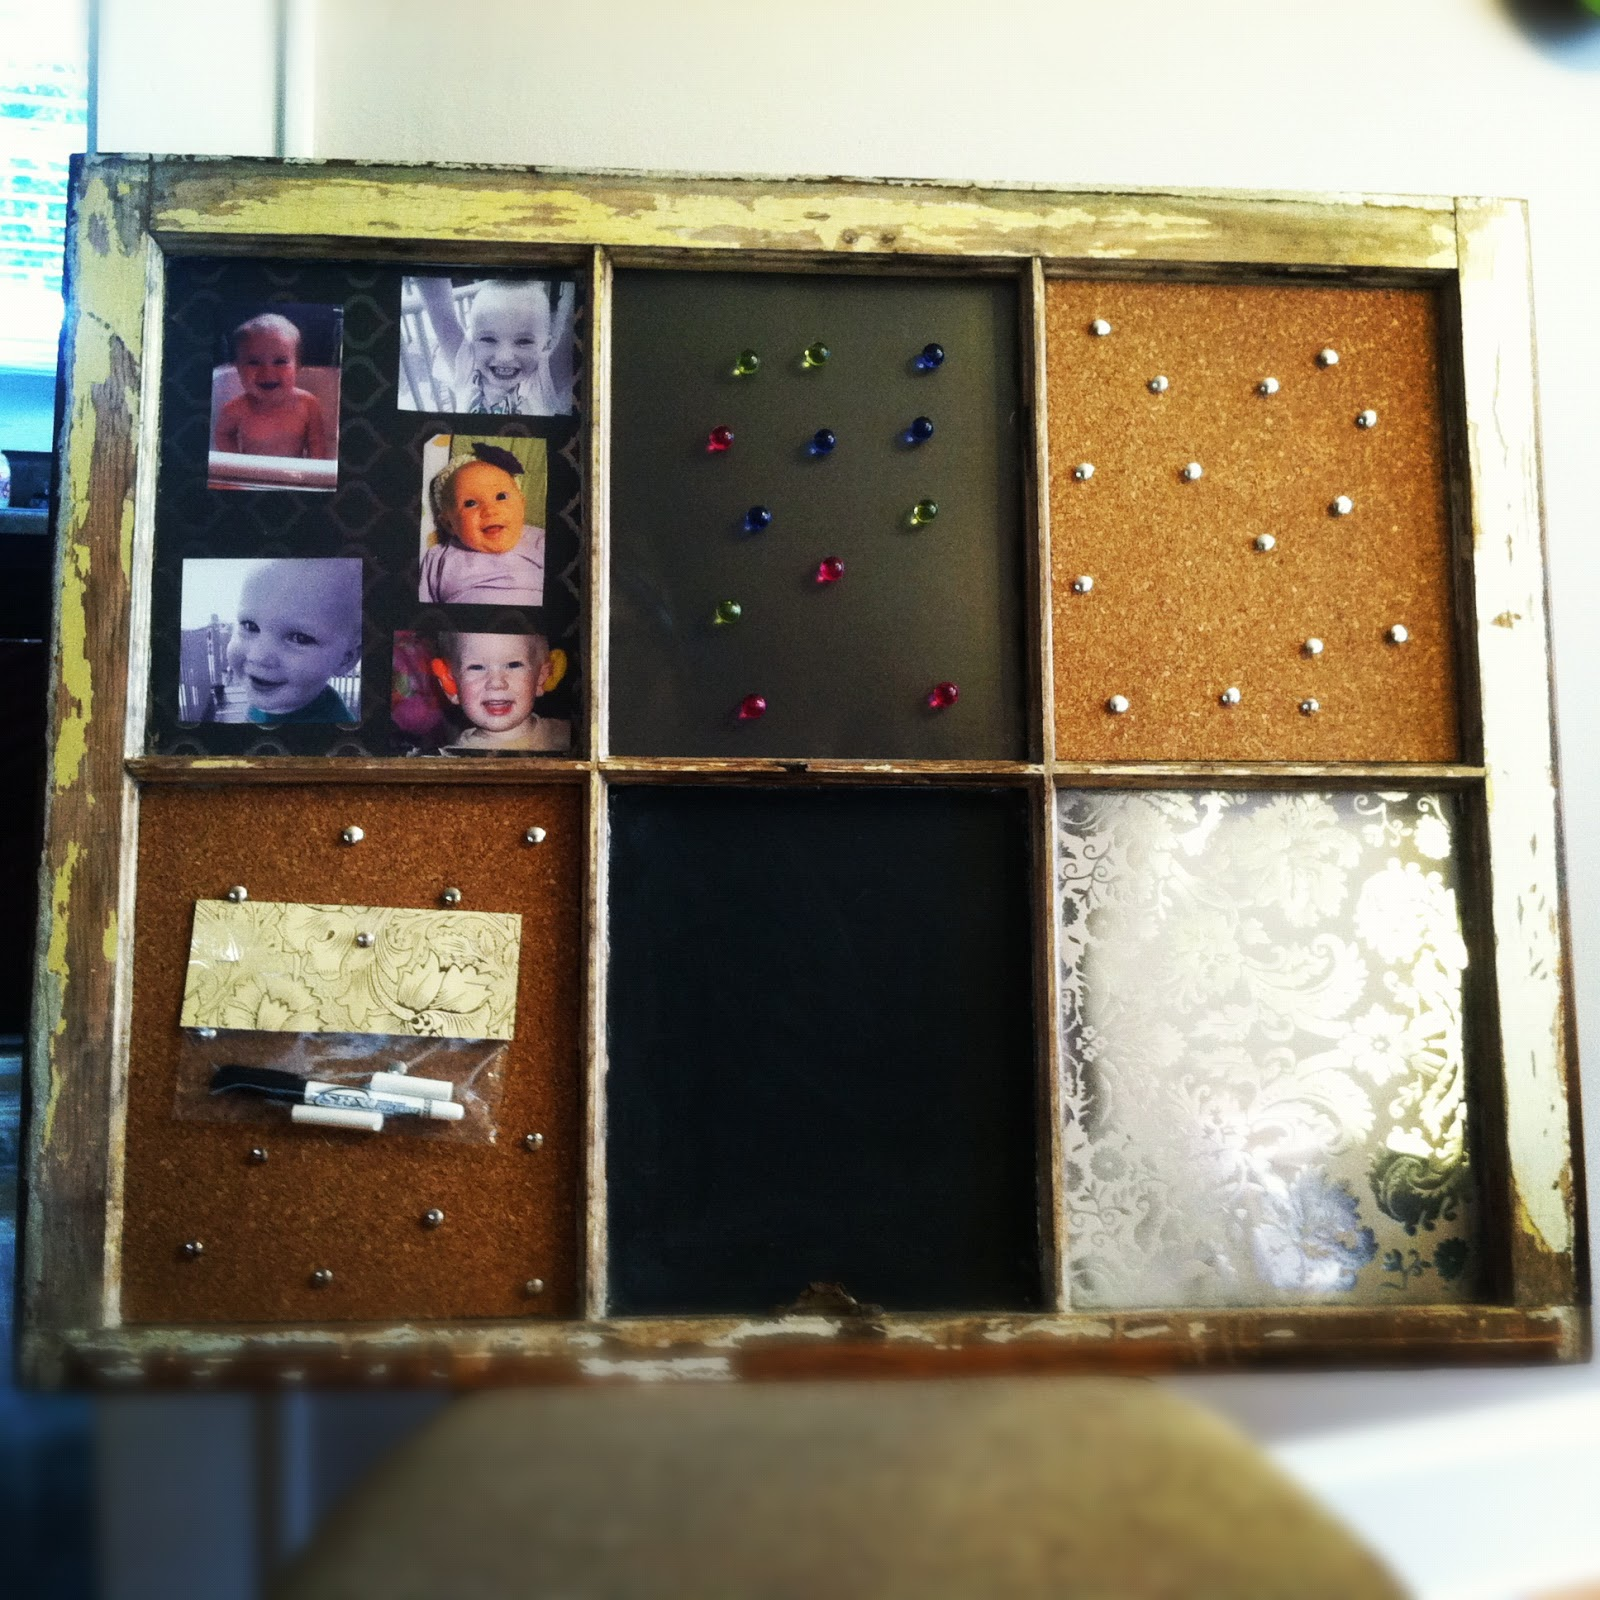 The burnett brood diy recycled window picture frames for Recycled window frames